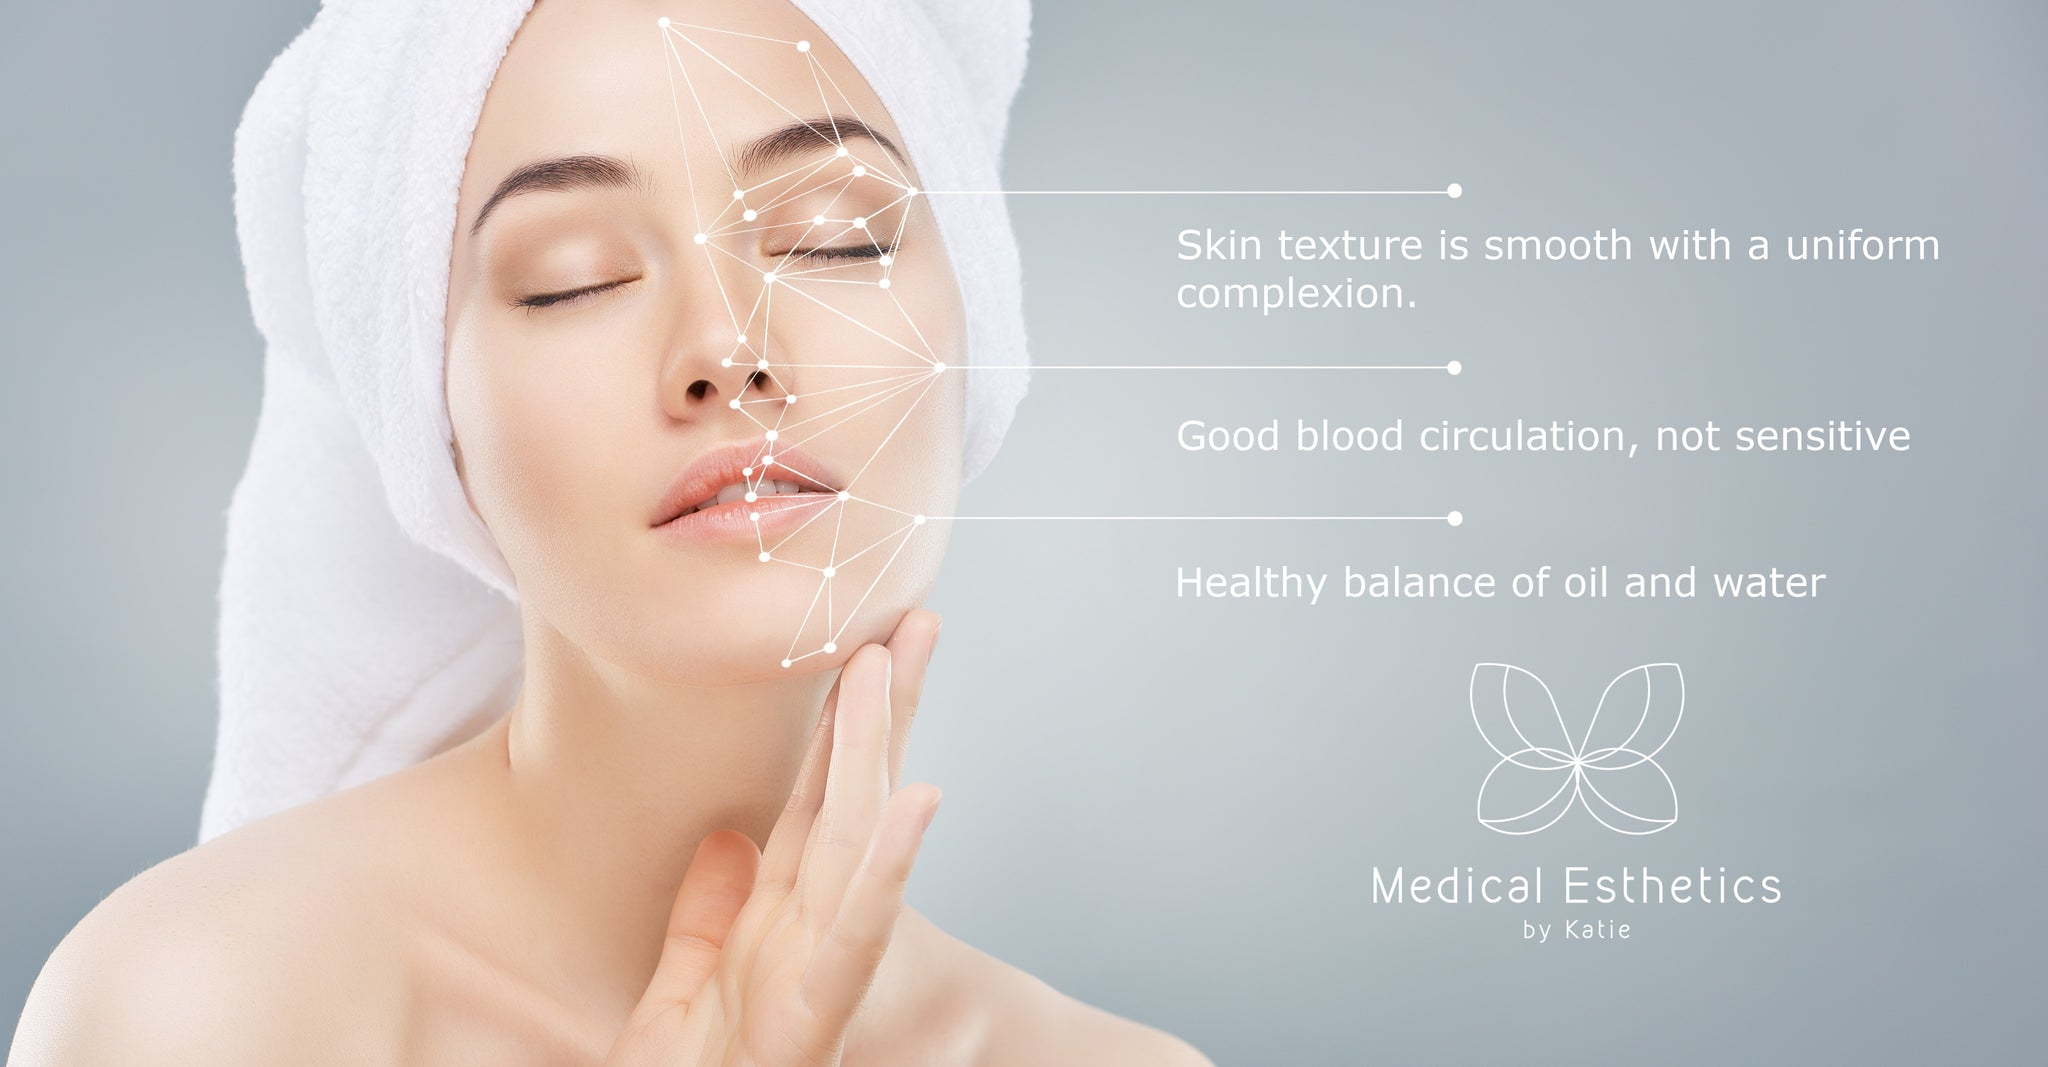 Balanced Management mbk clinical skincare solutions mebykatie